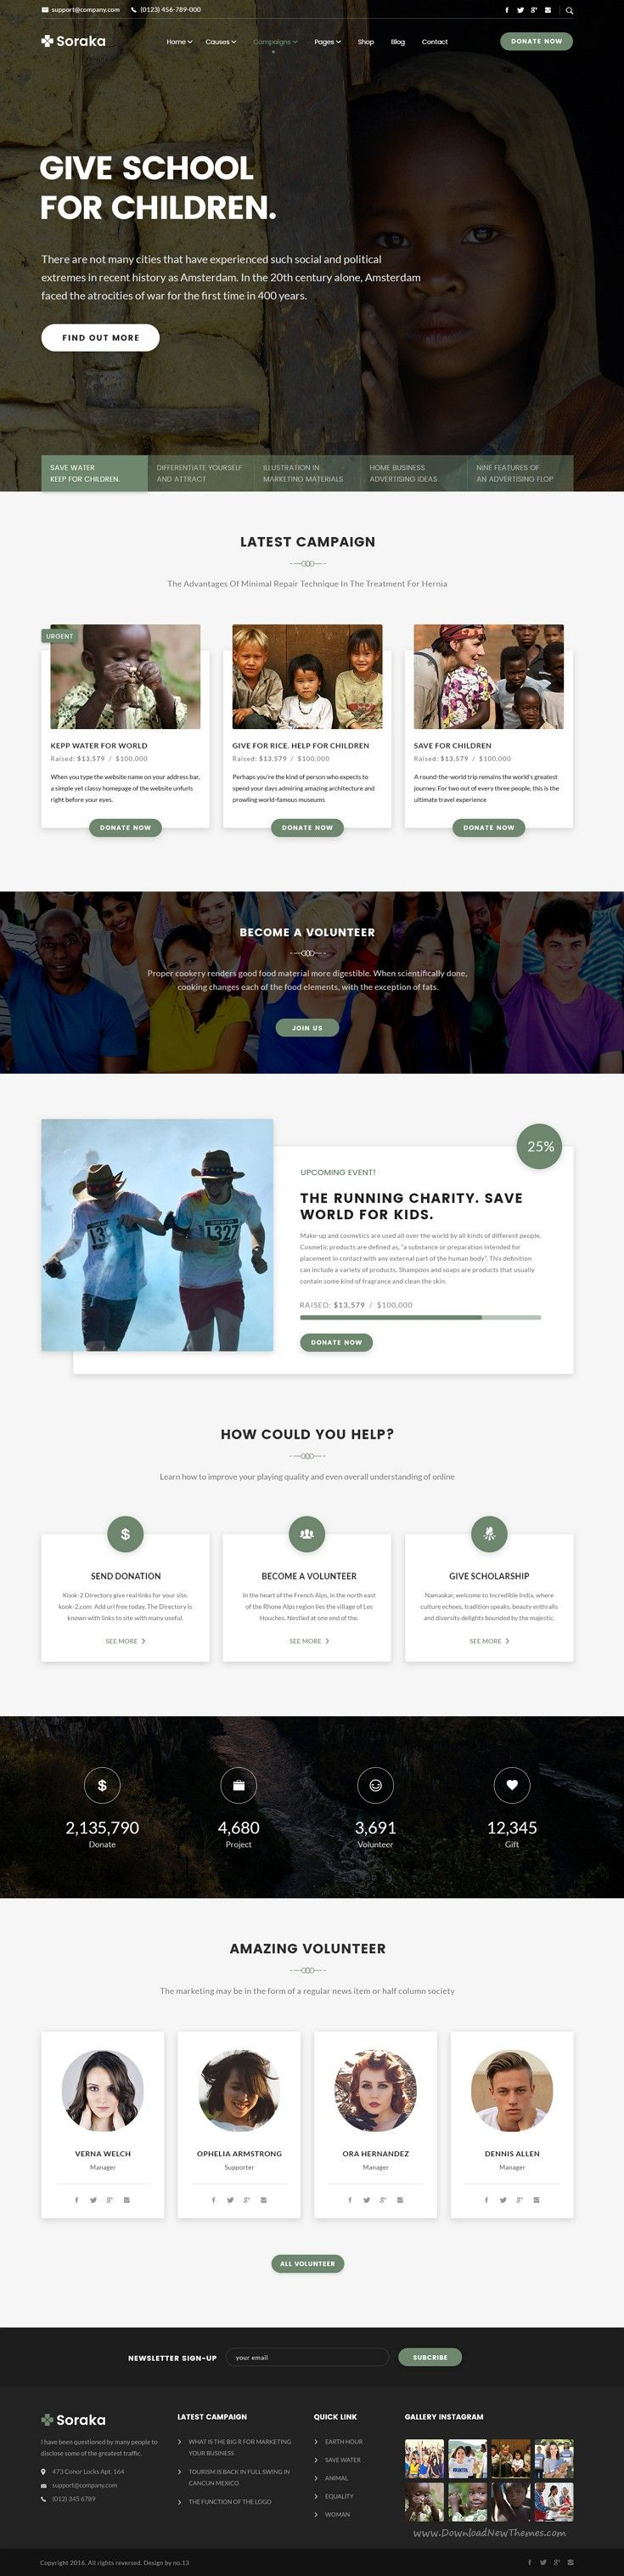 Soraka a special PSD template for #charity, non-profit, #fundraising and non-government organizations #website. Download Now!